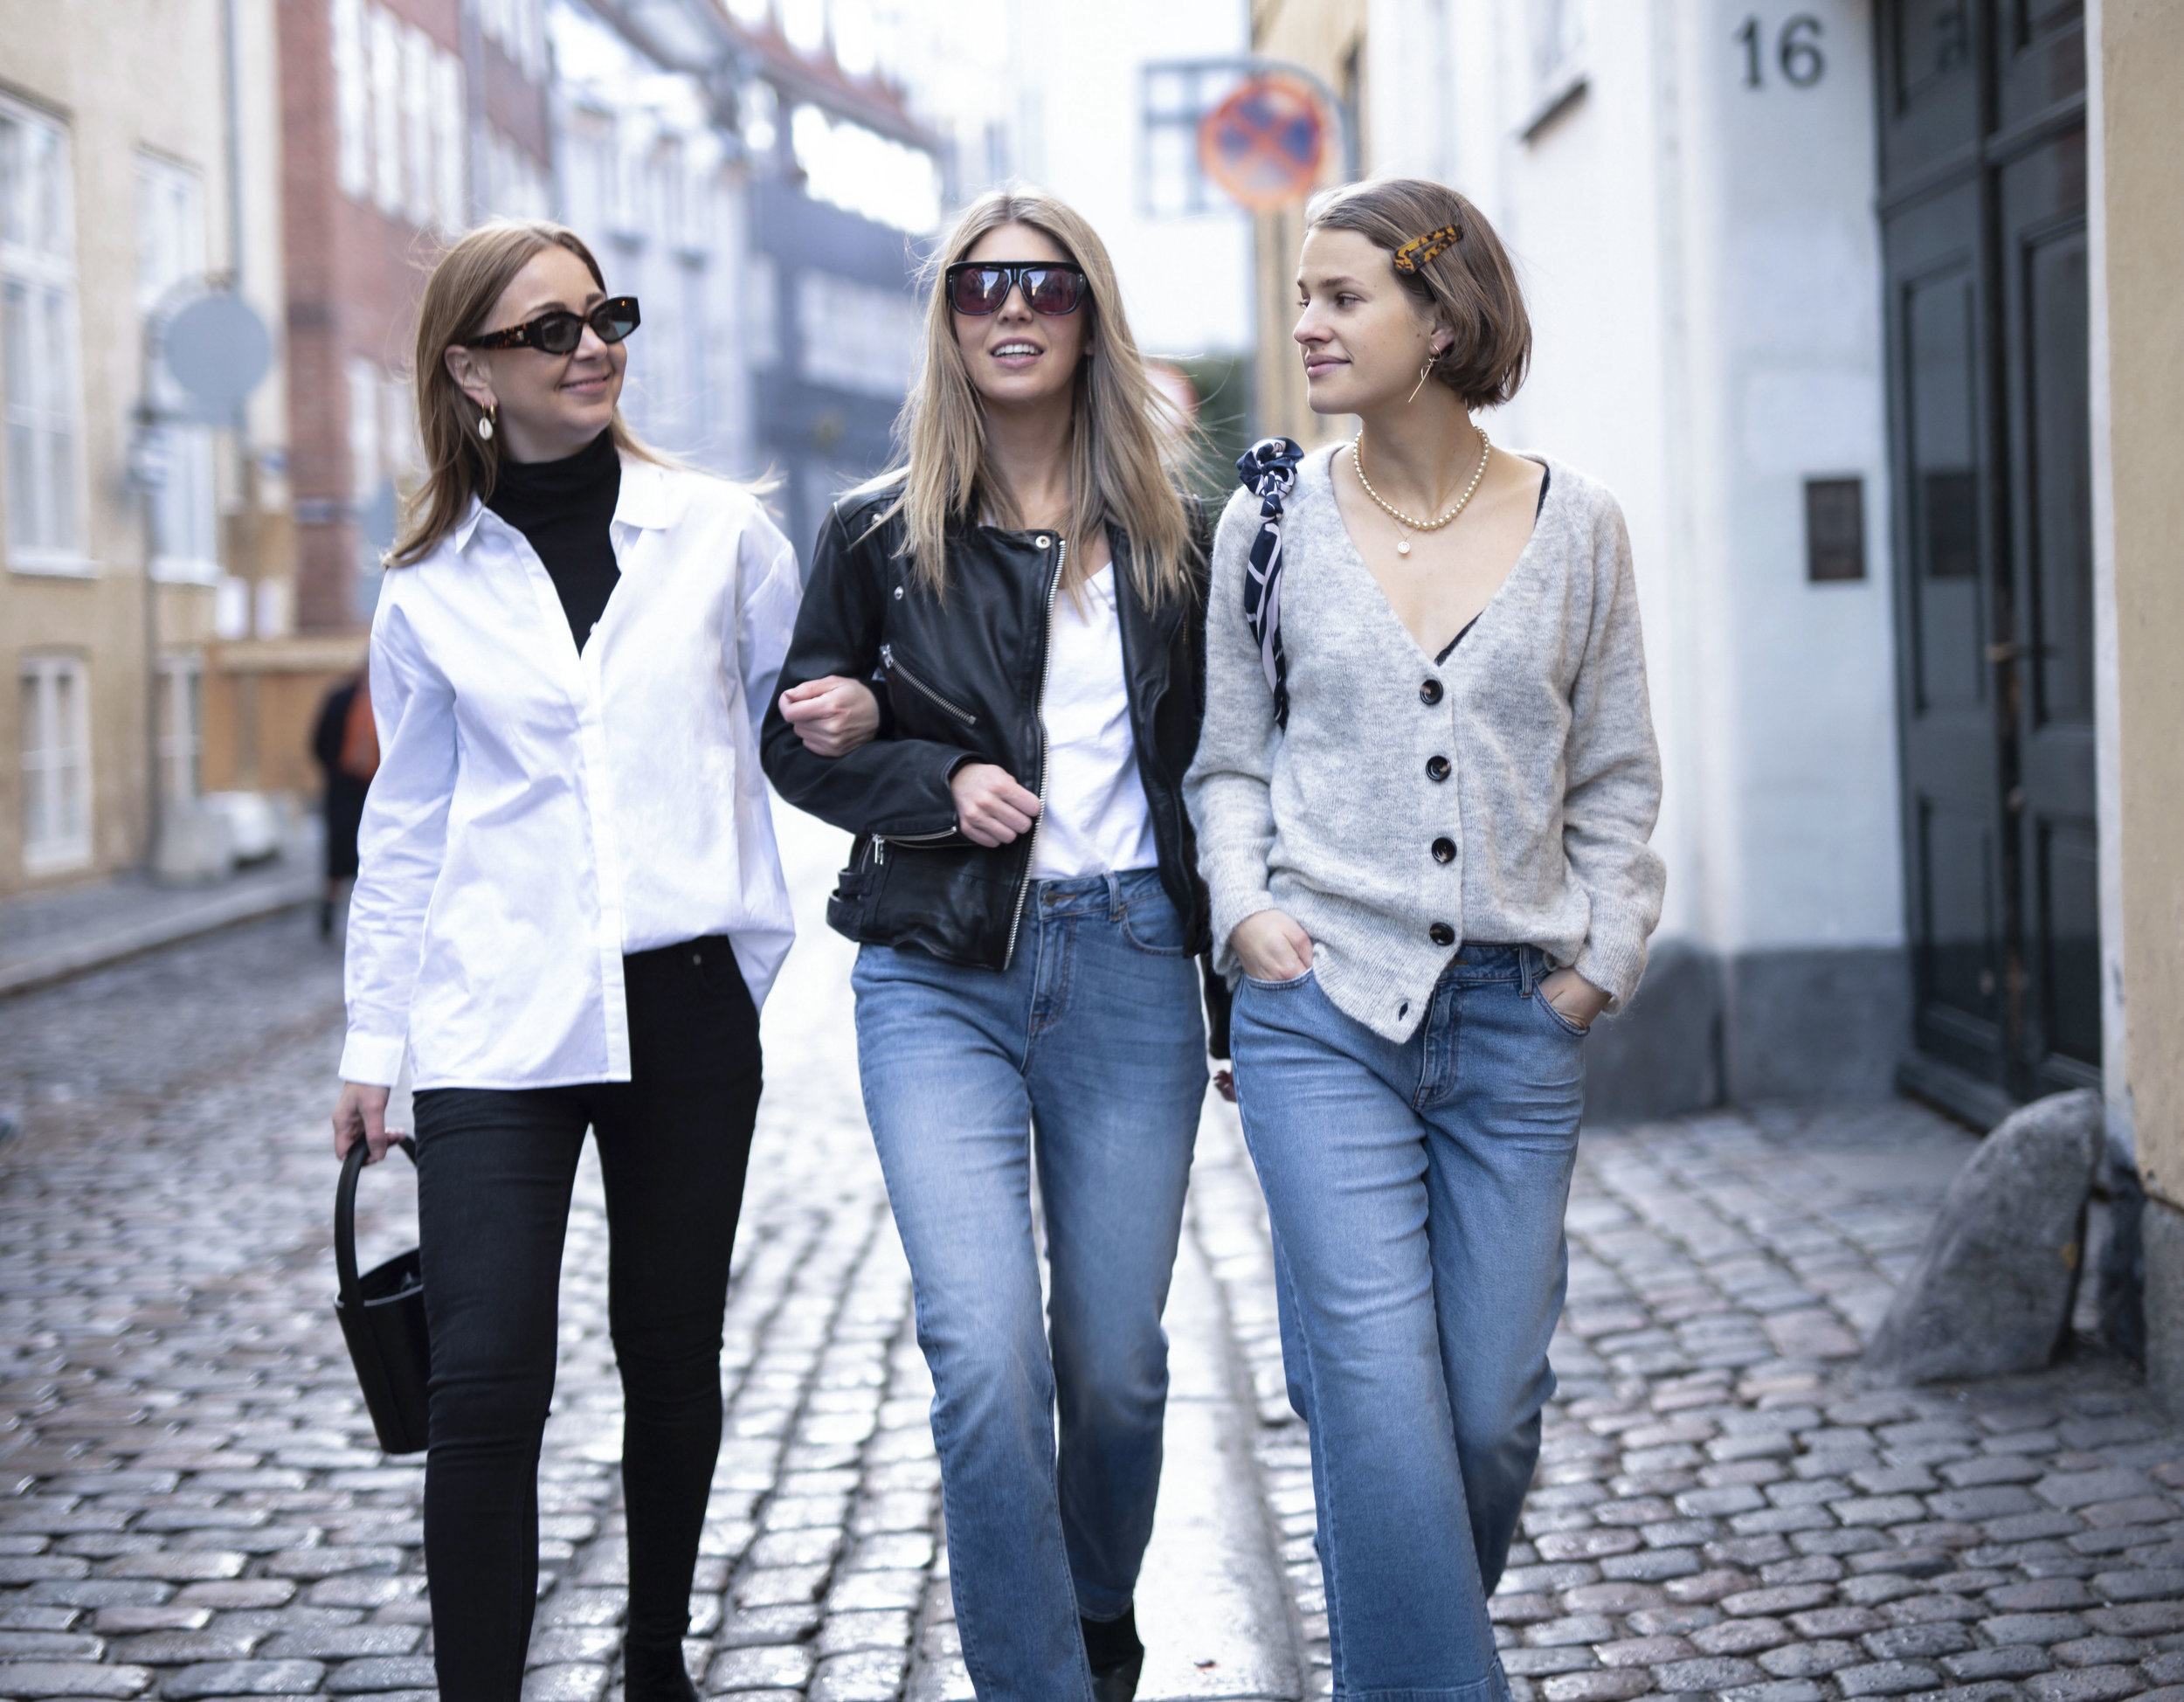 Katrine Krog, Cathrine Marie and Julie Blichfeld power walking on the streets of Copenhagen wearing Denim Hunter clothes from top to toe